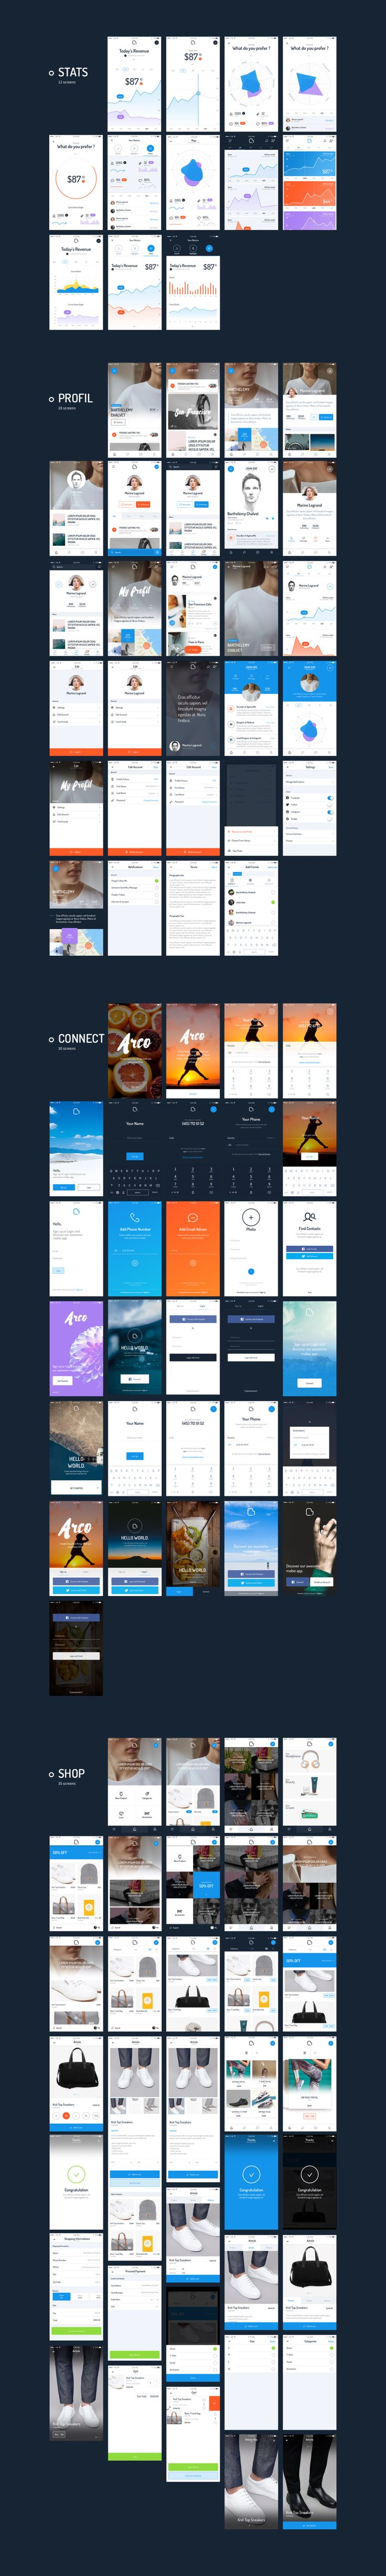 Arco - Mobile UI Kit by MarketMe on @creativemarket